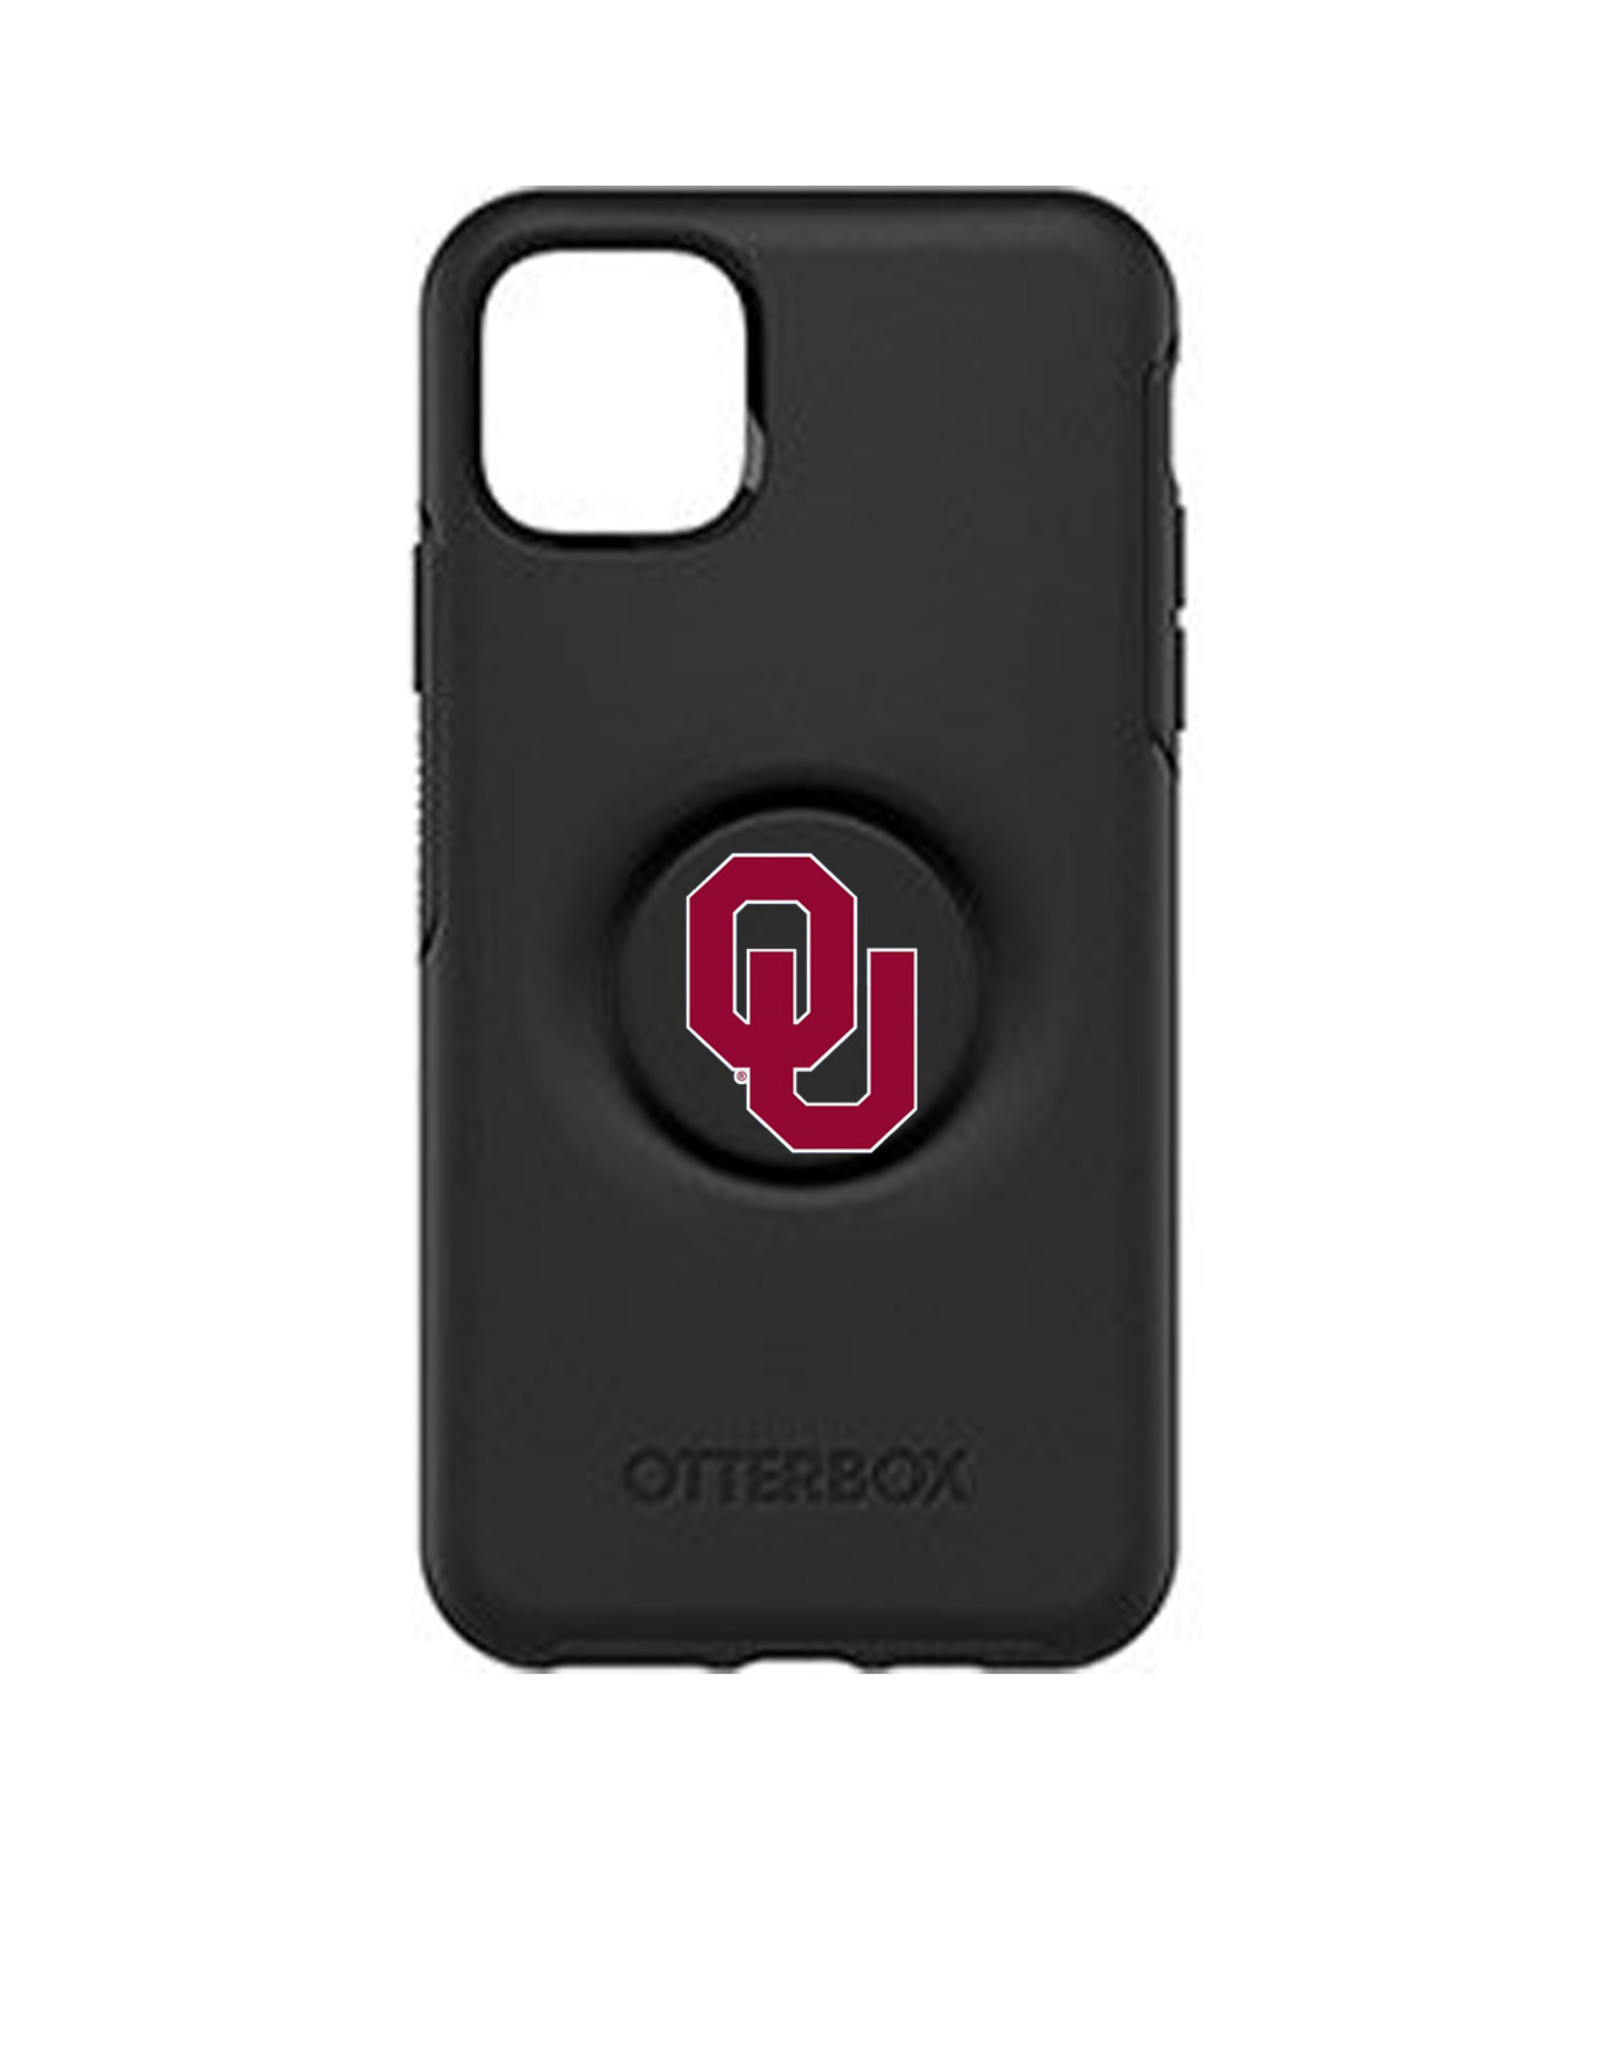 Otter Box Otter Box Otter+Pop OU iPhone 11 Pro Case